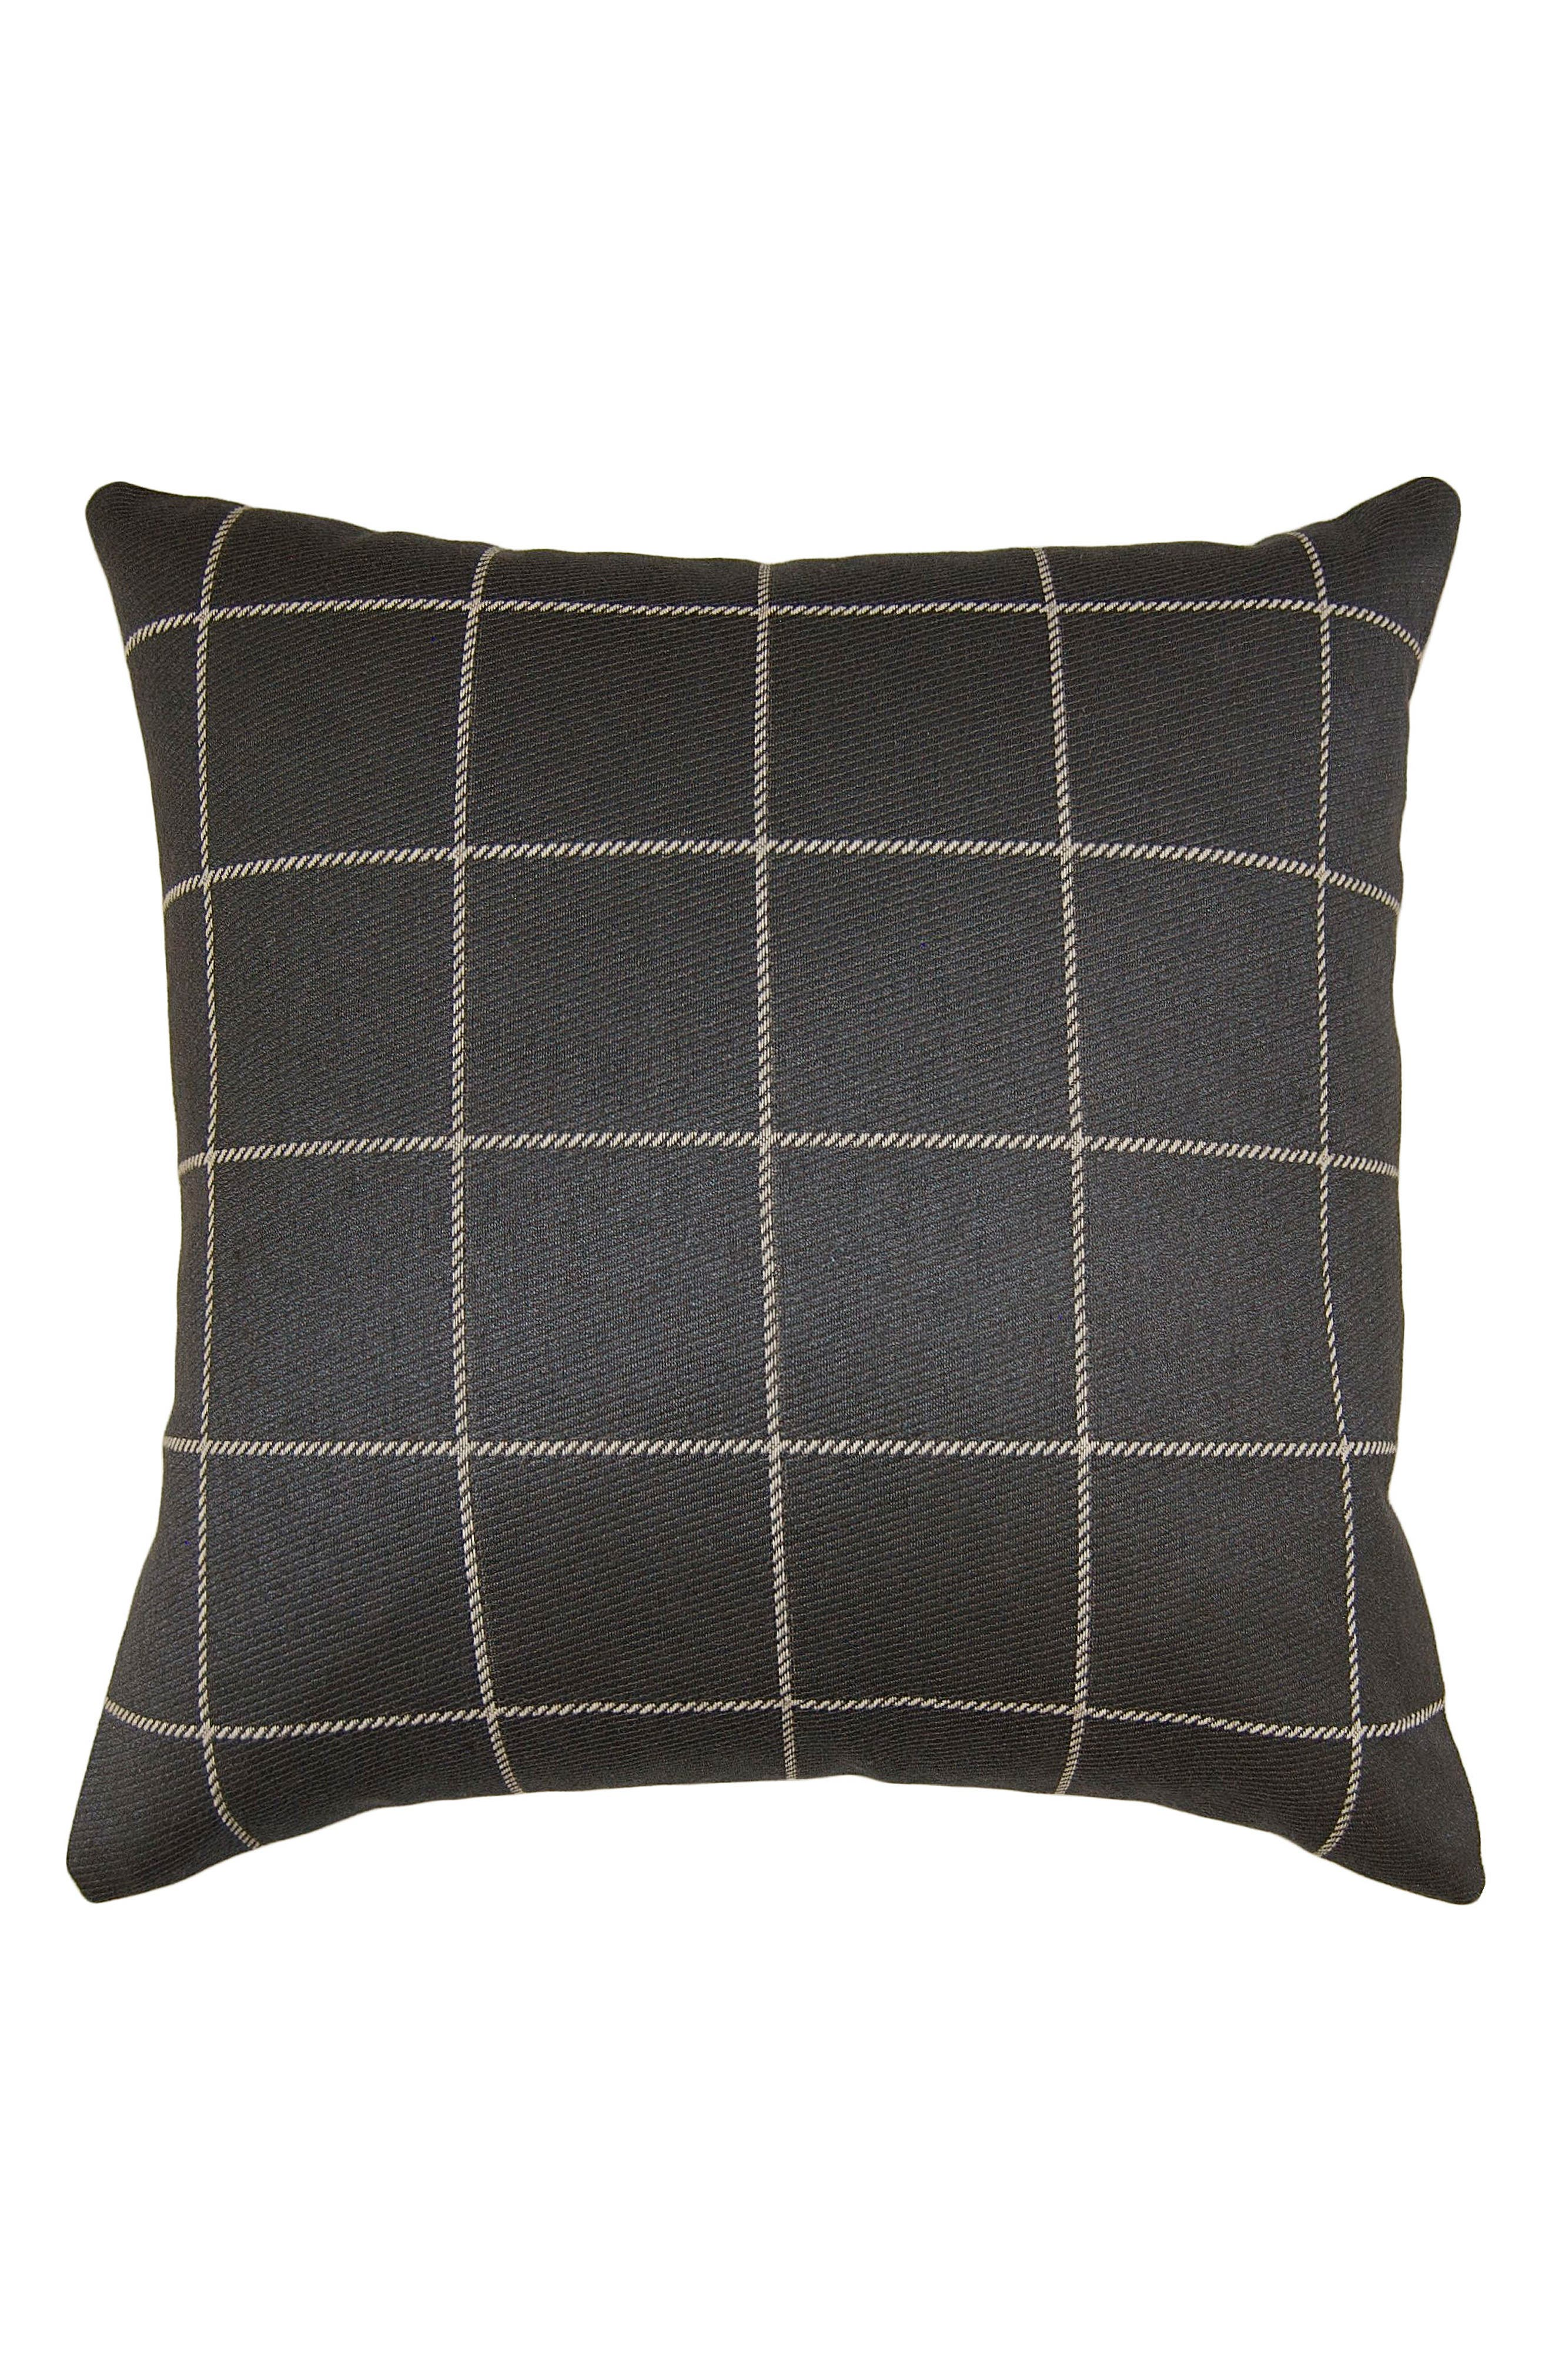 Kowloon Accent Pillow,                             Main thumbnail 1, color,                             Grey